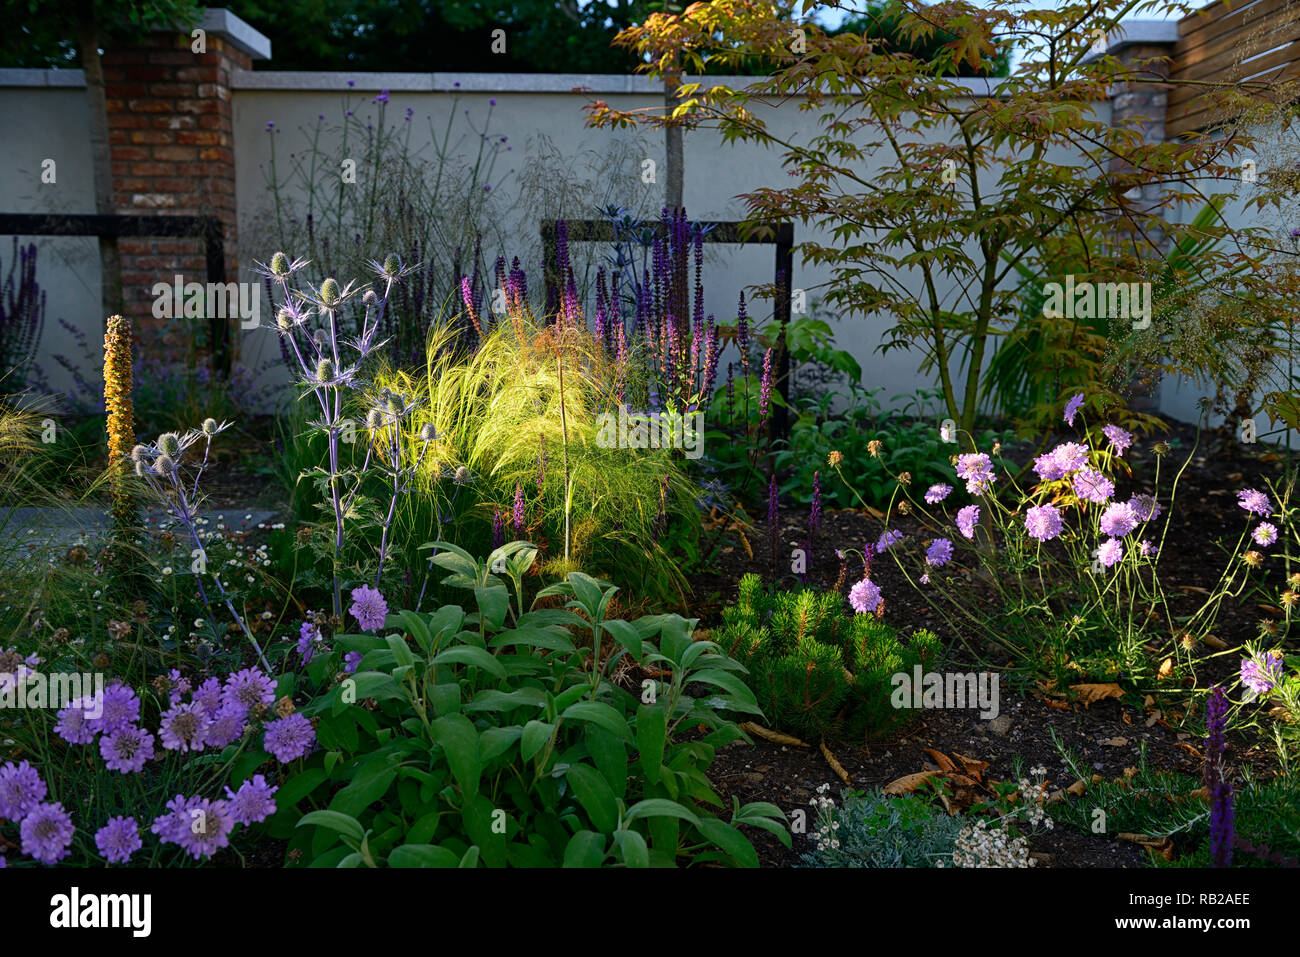 evening sun,illuminates,illuminate,shines,shining,newly planted,mix,mixed,perennial bed,border,scabiosa,eryngium,verbena,acer,gardens,garden design,RM - Stock Image